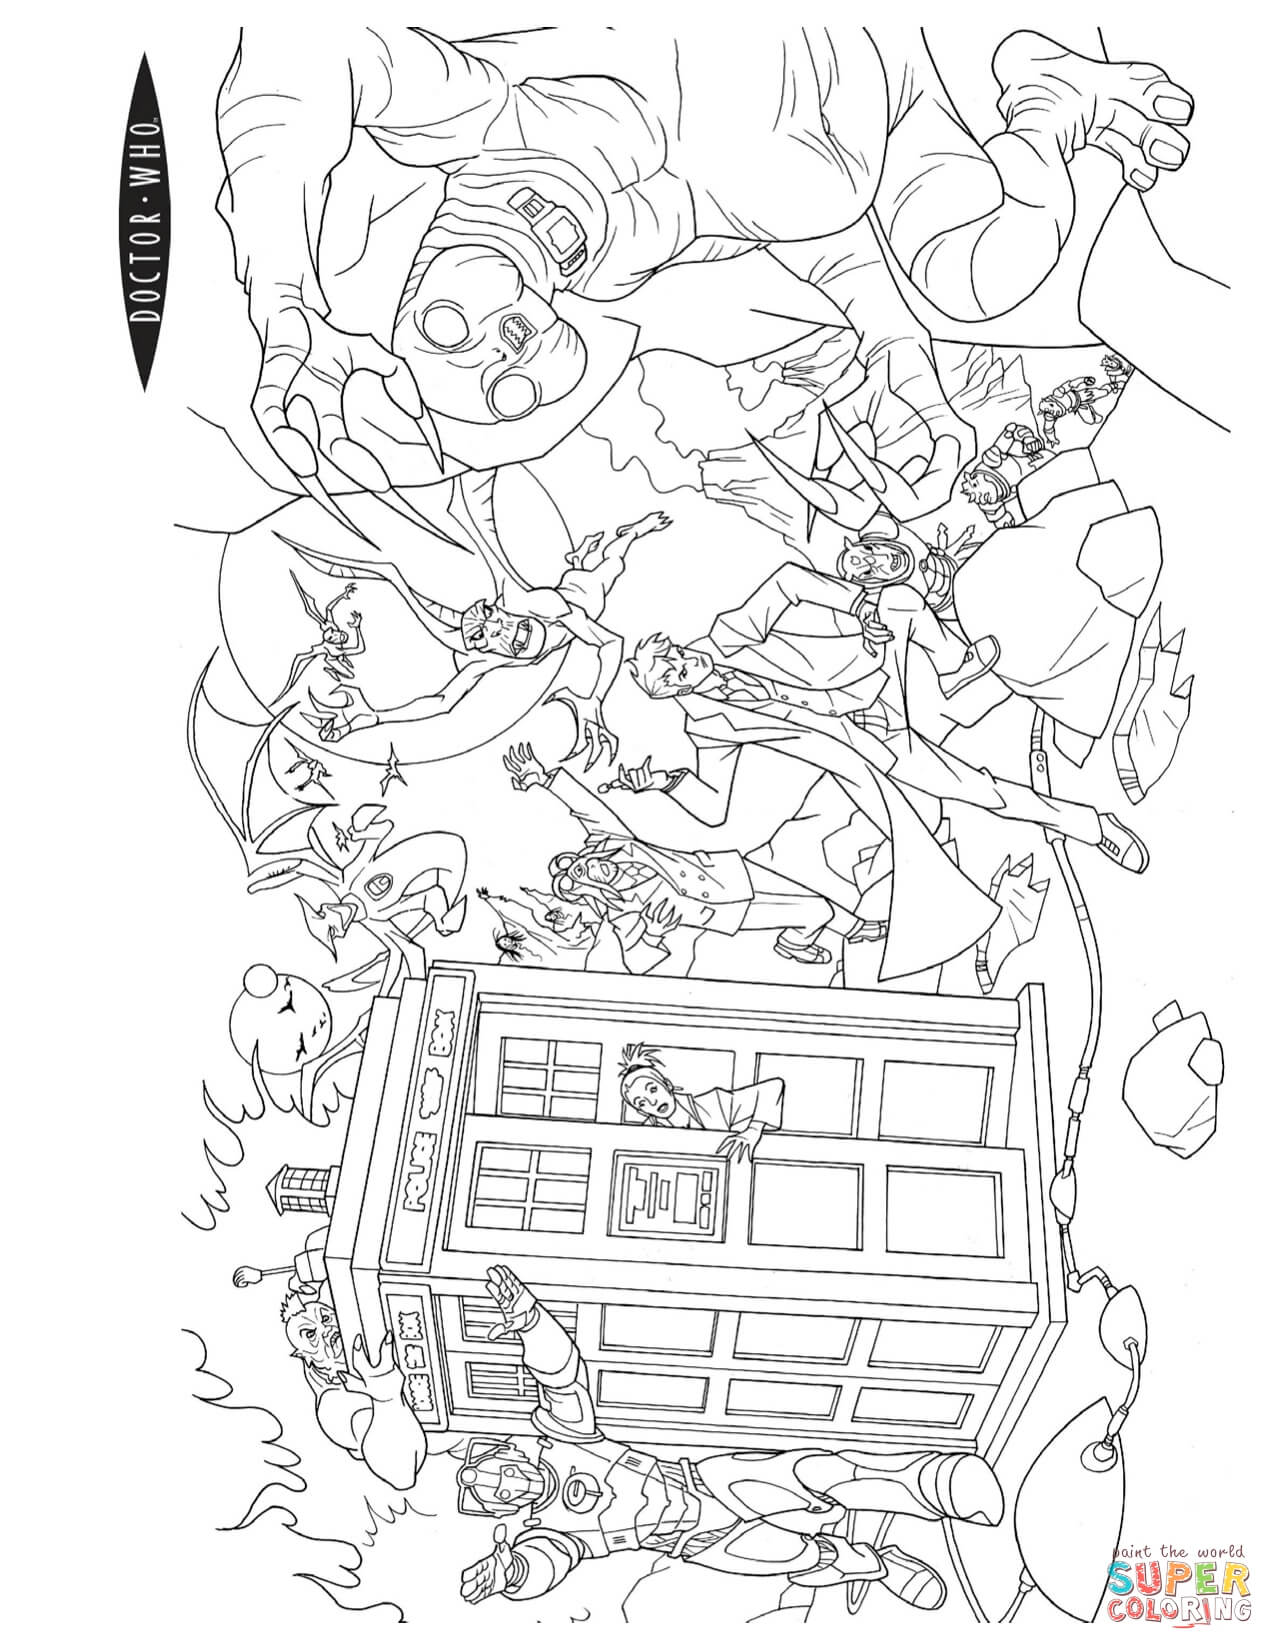 Doctor Who Coloring Page Free Printable Coloring Pages Color